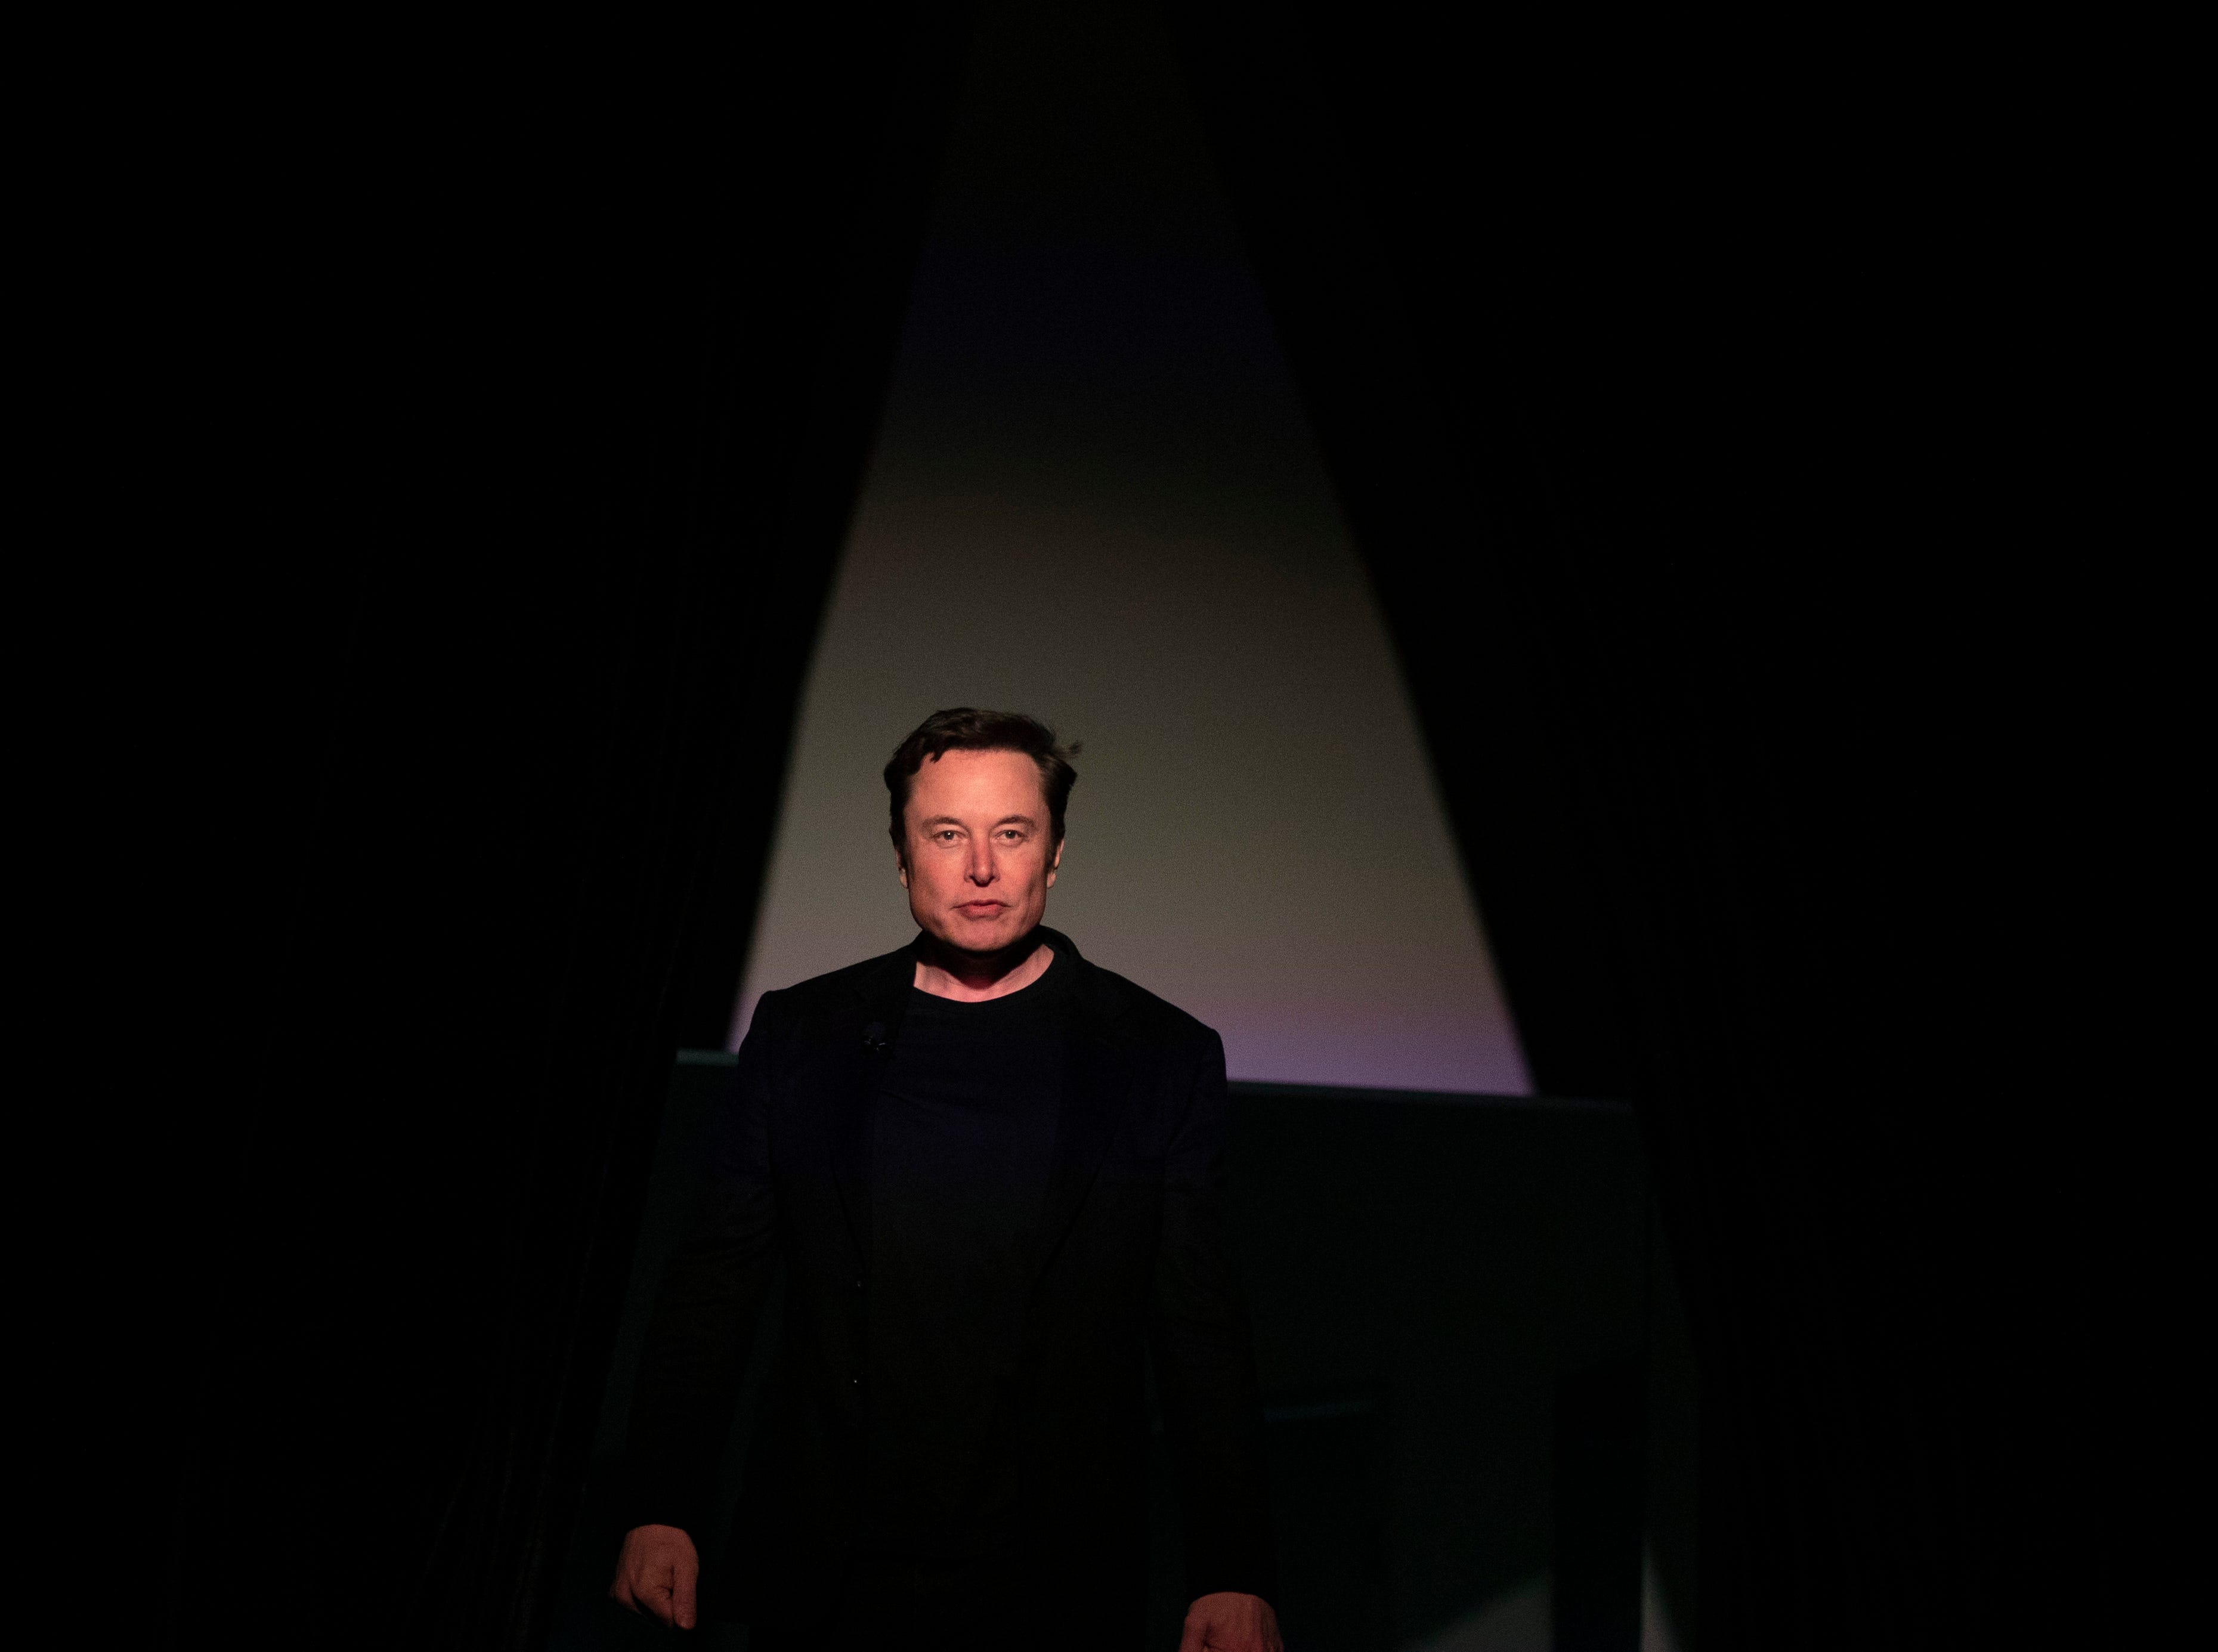 Tesla CEO Elon Musk walks onto the stage to introduce the Model Y at the company's design studio Thursday, March 14, 2019, in Hawthorne, Calif. The Model Y may be Tesla's most important product yet as it attempts to expand into the mainstream and generate enough cash to repay massive debts that threaten to topple the Palo Alto, California, company. (AP Photo/Jae C. Hong)